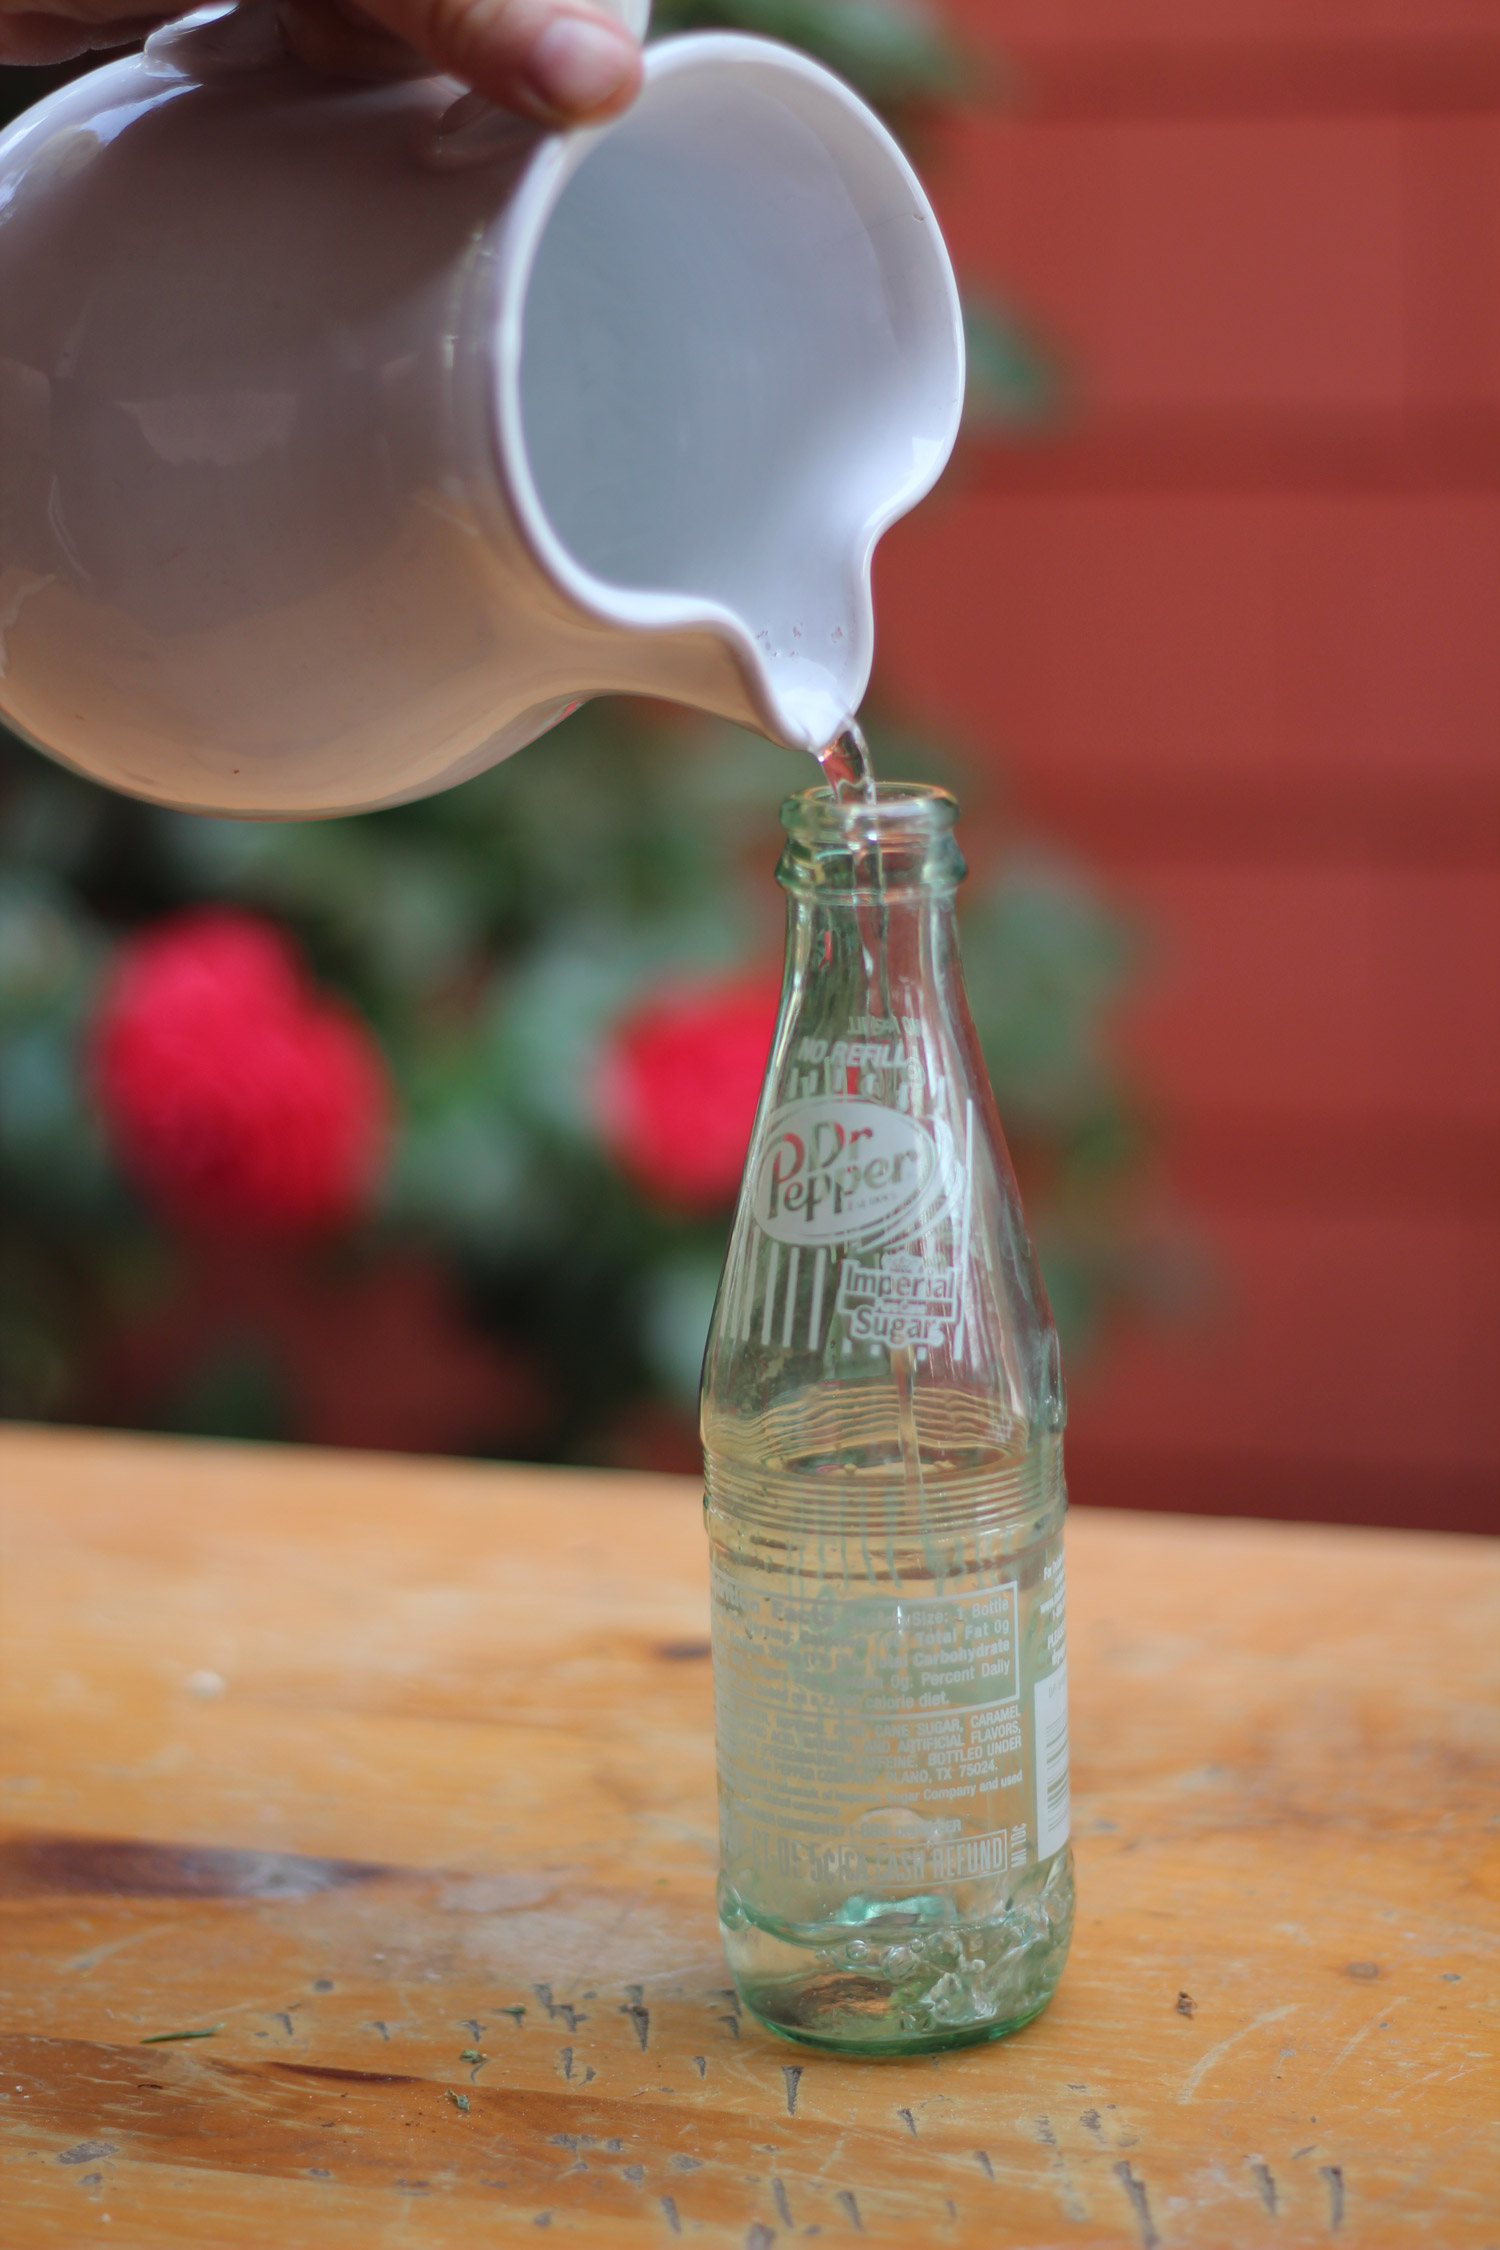 Find a glass soda bottle like this one withgreen glass and white lettering. Fill with water up to 2 inches below neck.